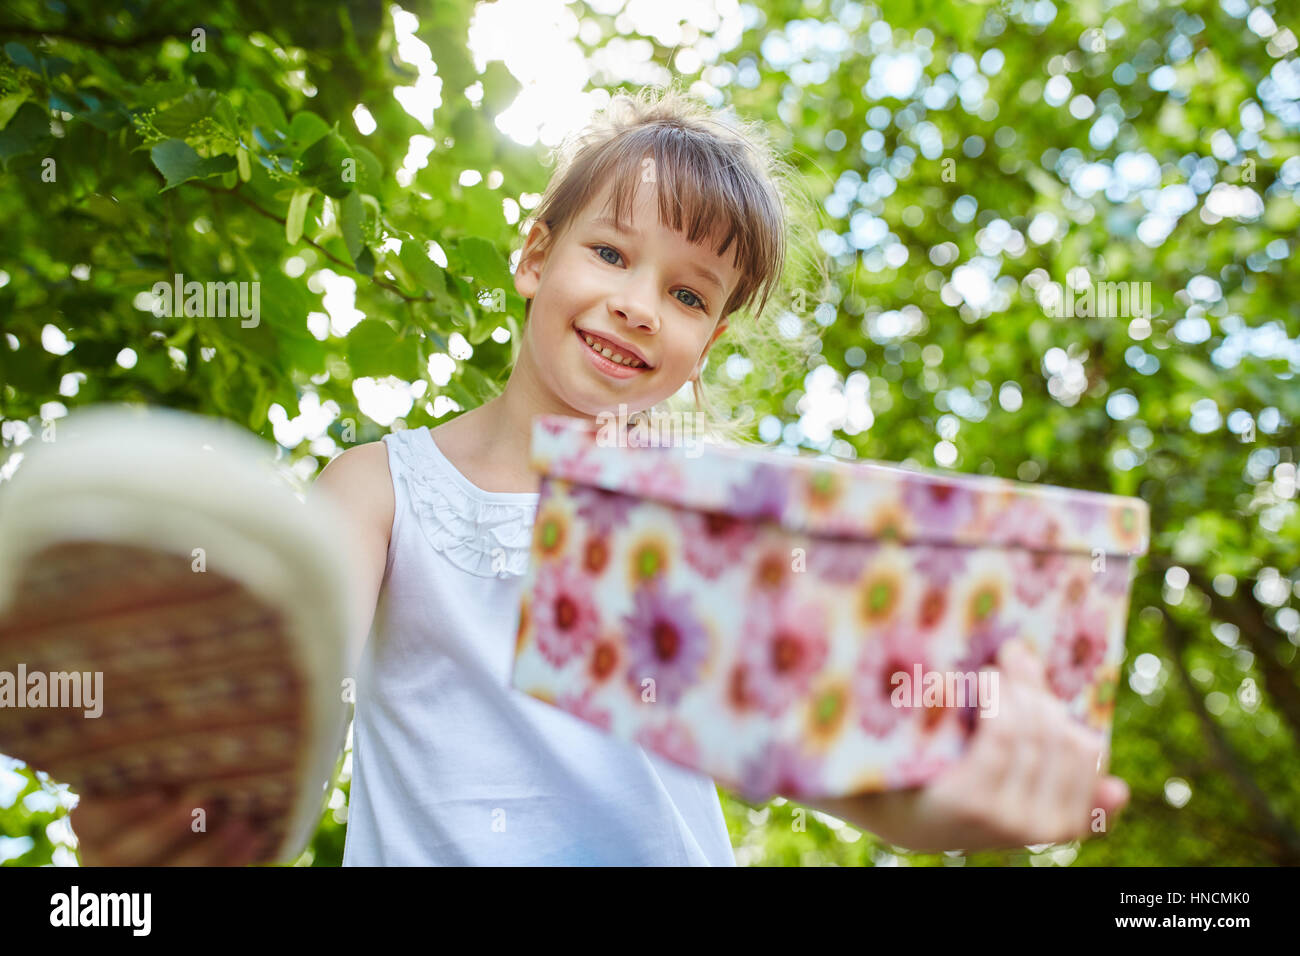 Girl with birthday gift at suprise birthday party smiles with joy - Stock Image